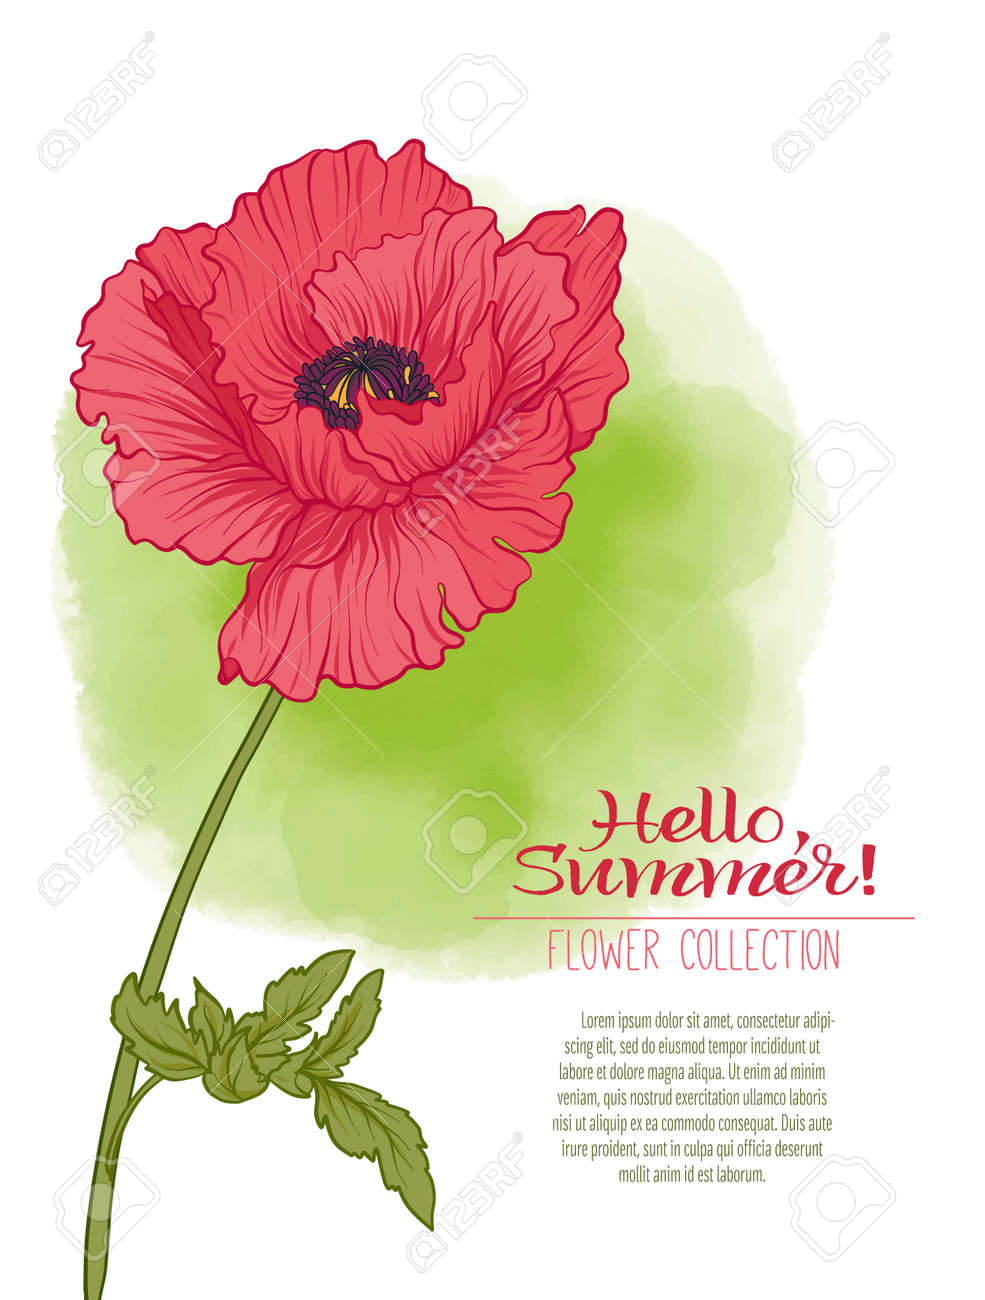 A Poppy Flower On A Green Watercolor Background The Flowers